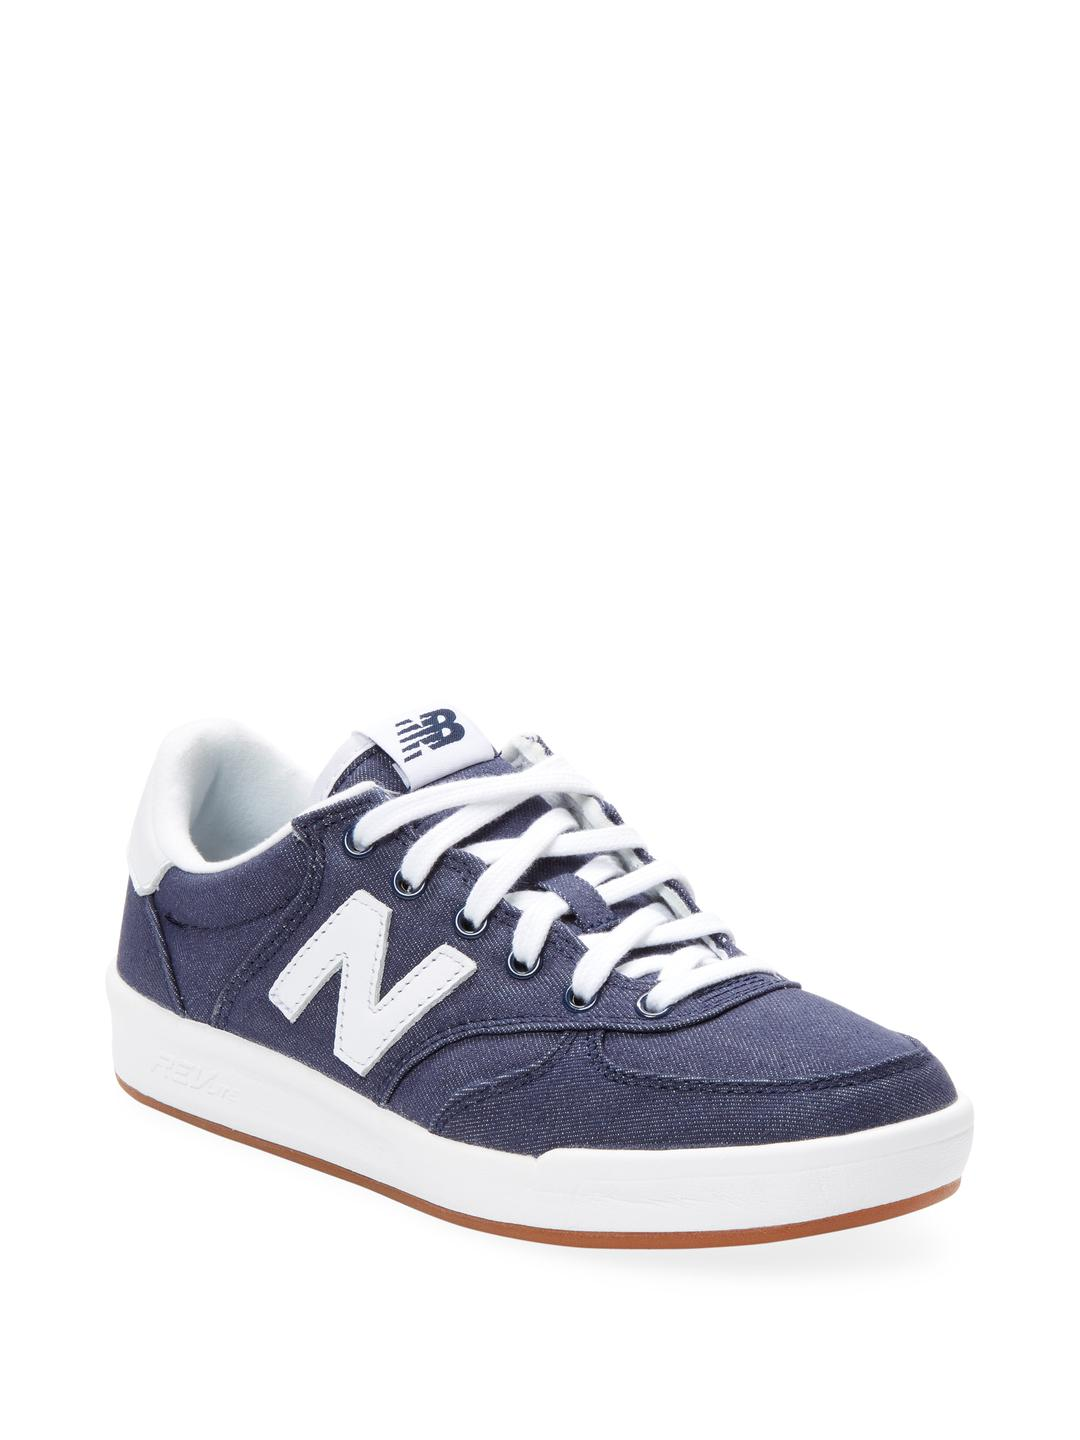 cecaabadd7a0 Lyst - New Balance Patch Low-top Sneaker in Blue for Men